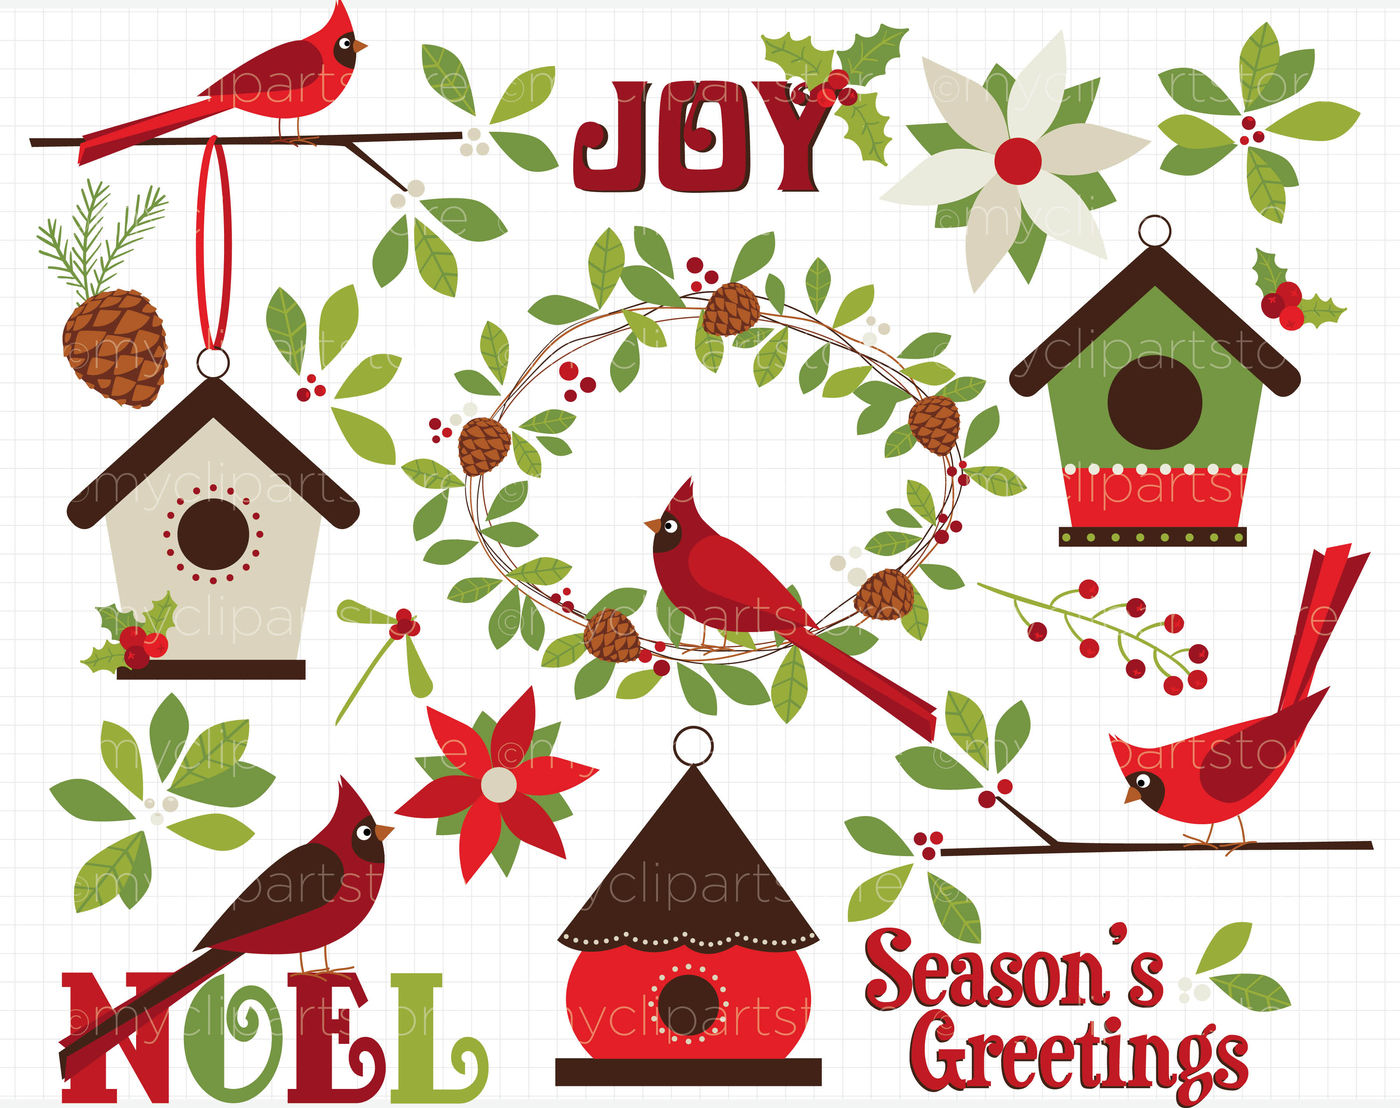 Christmas Cardinals Clipart.Christmas Red Cardinals Vector Clipart By Myclipartstore